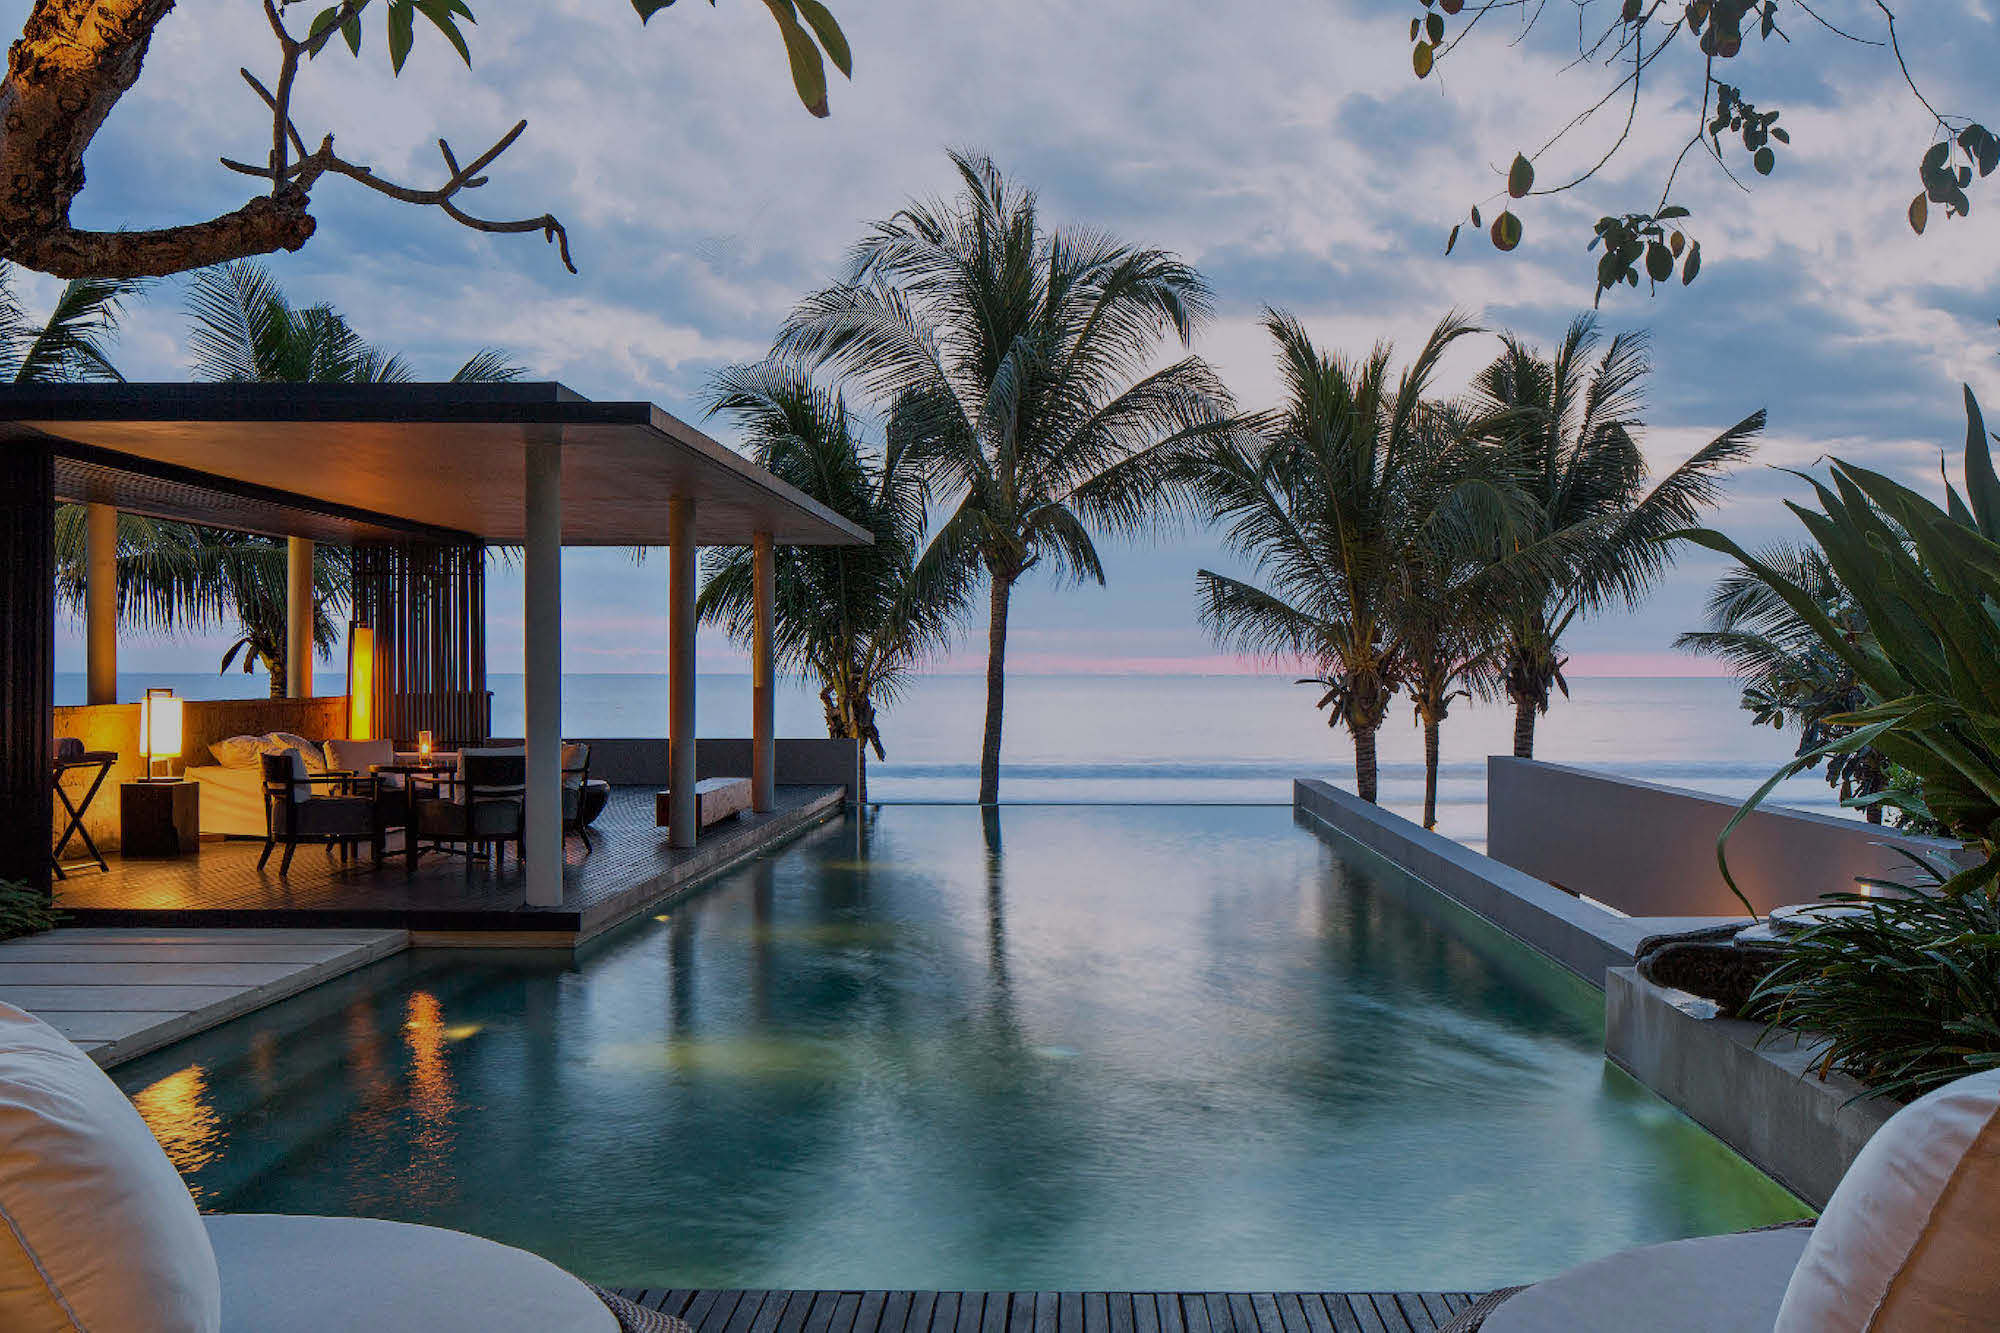 Hotel or Villa – Pros, Cons & Need-to-Know